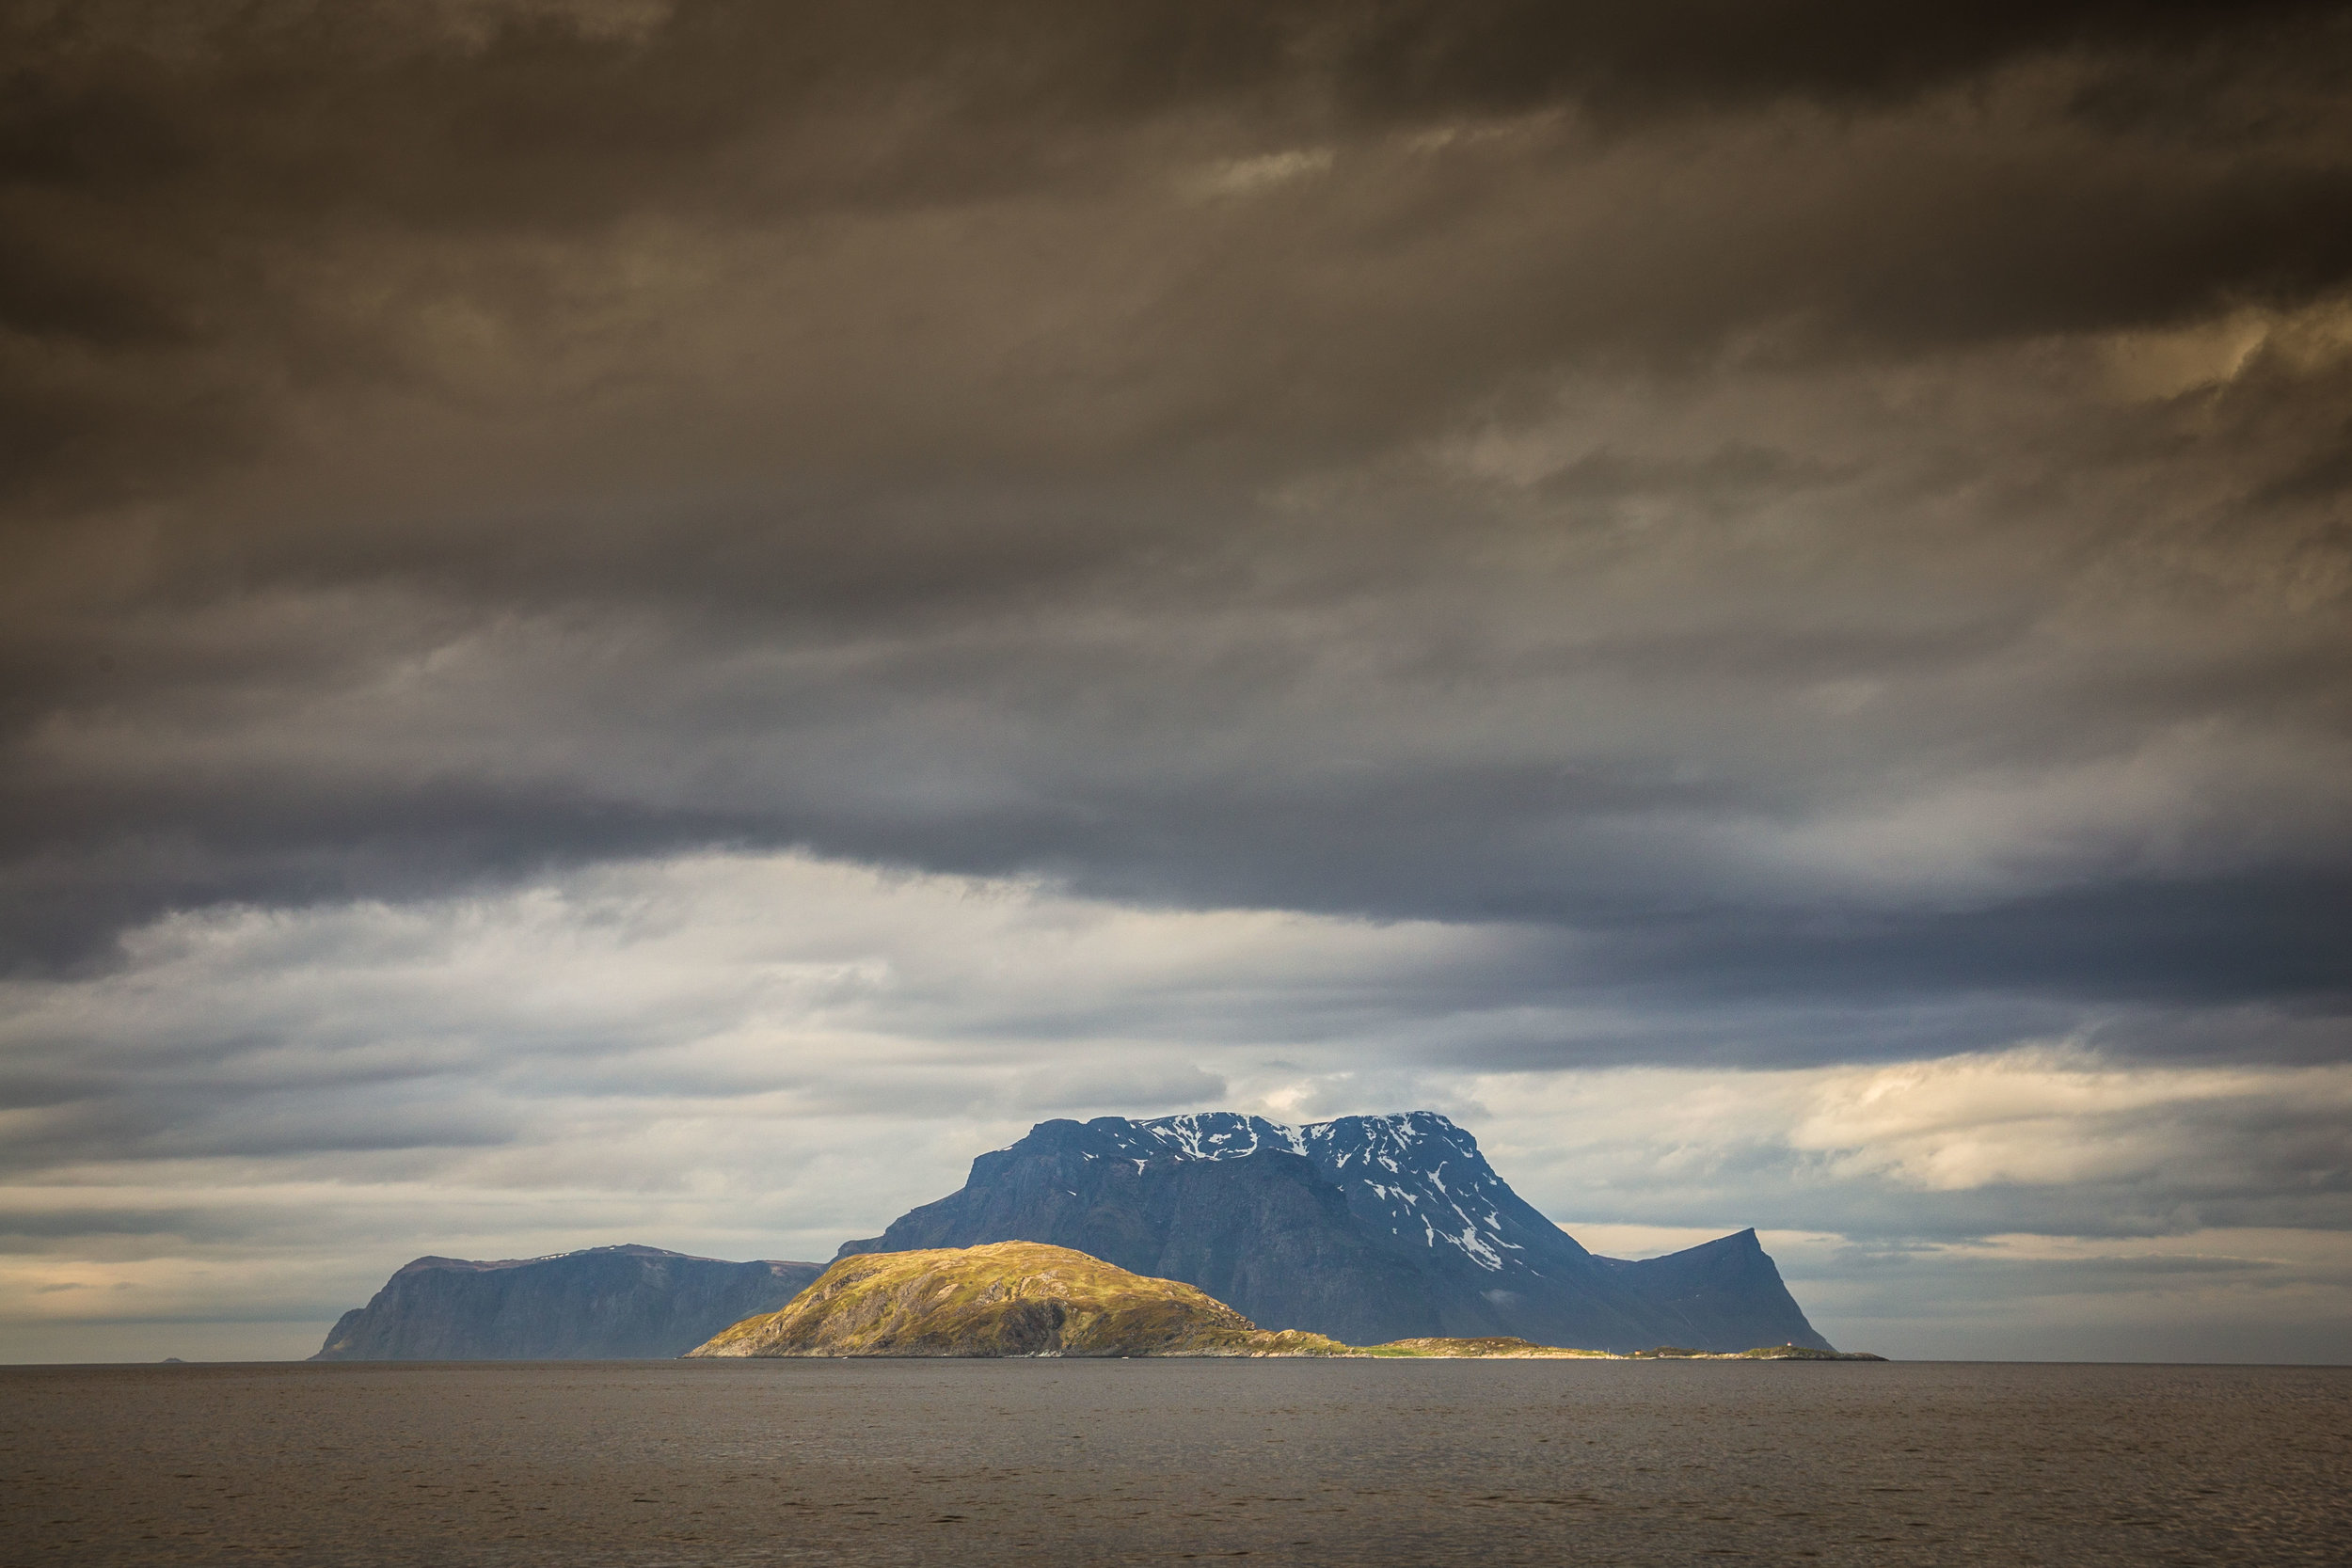 Our last glimpse of mainland Norway